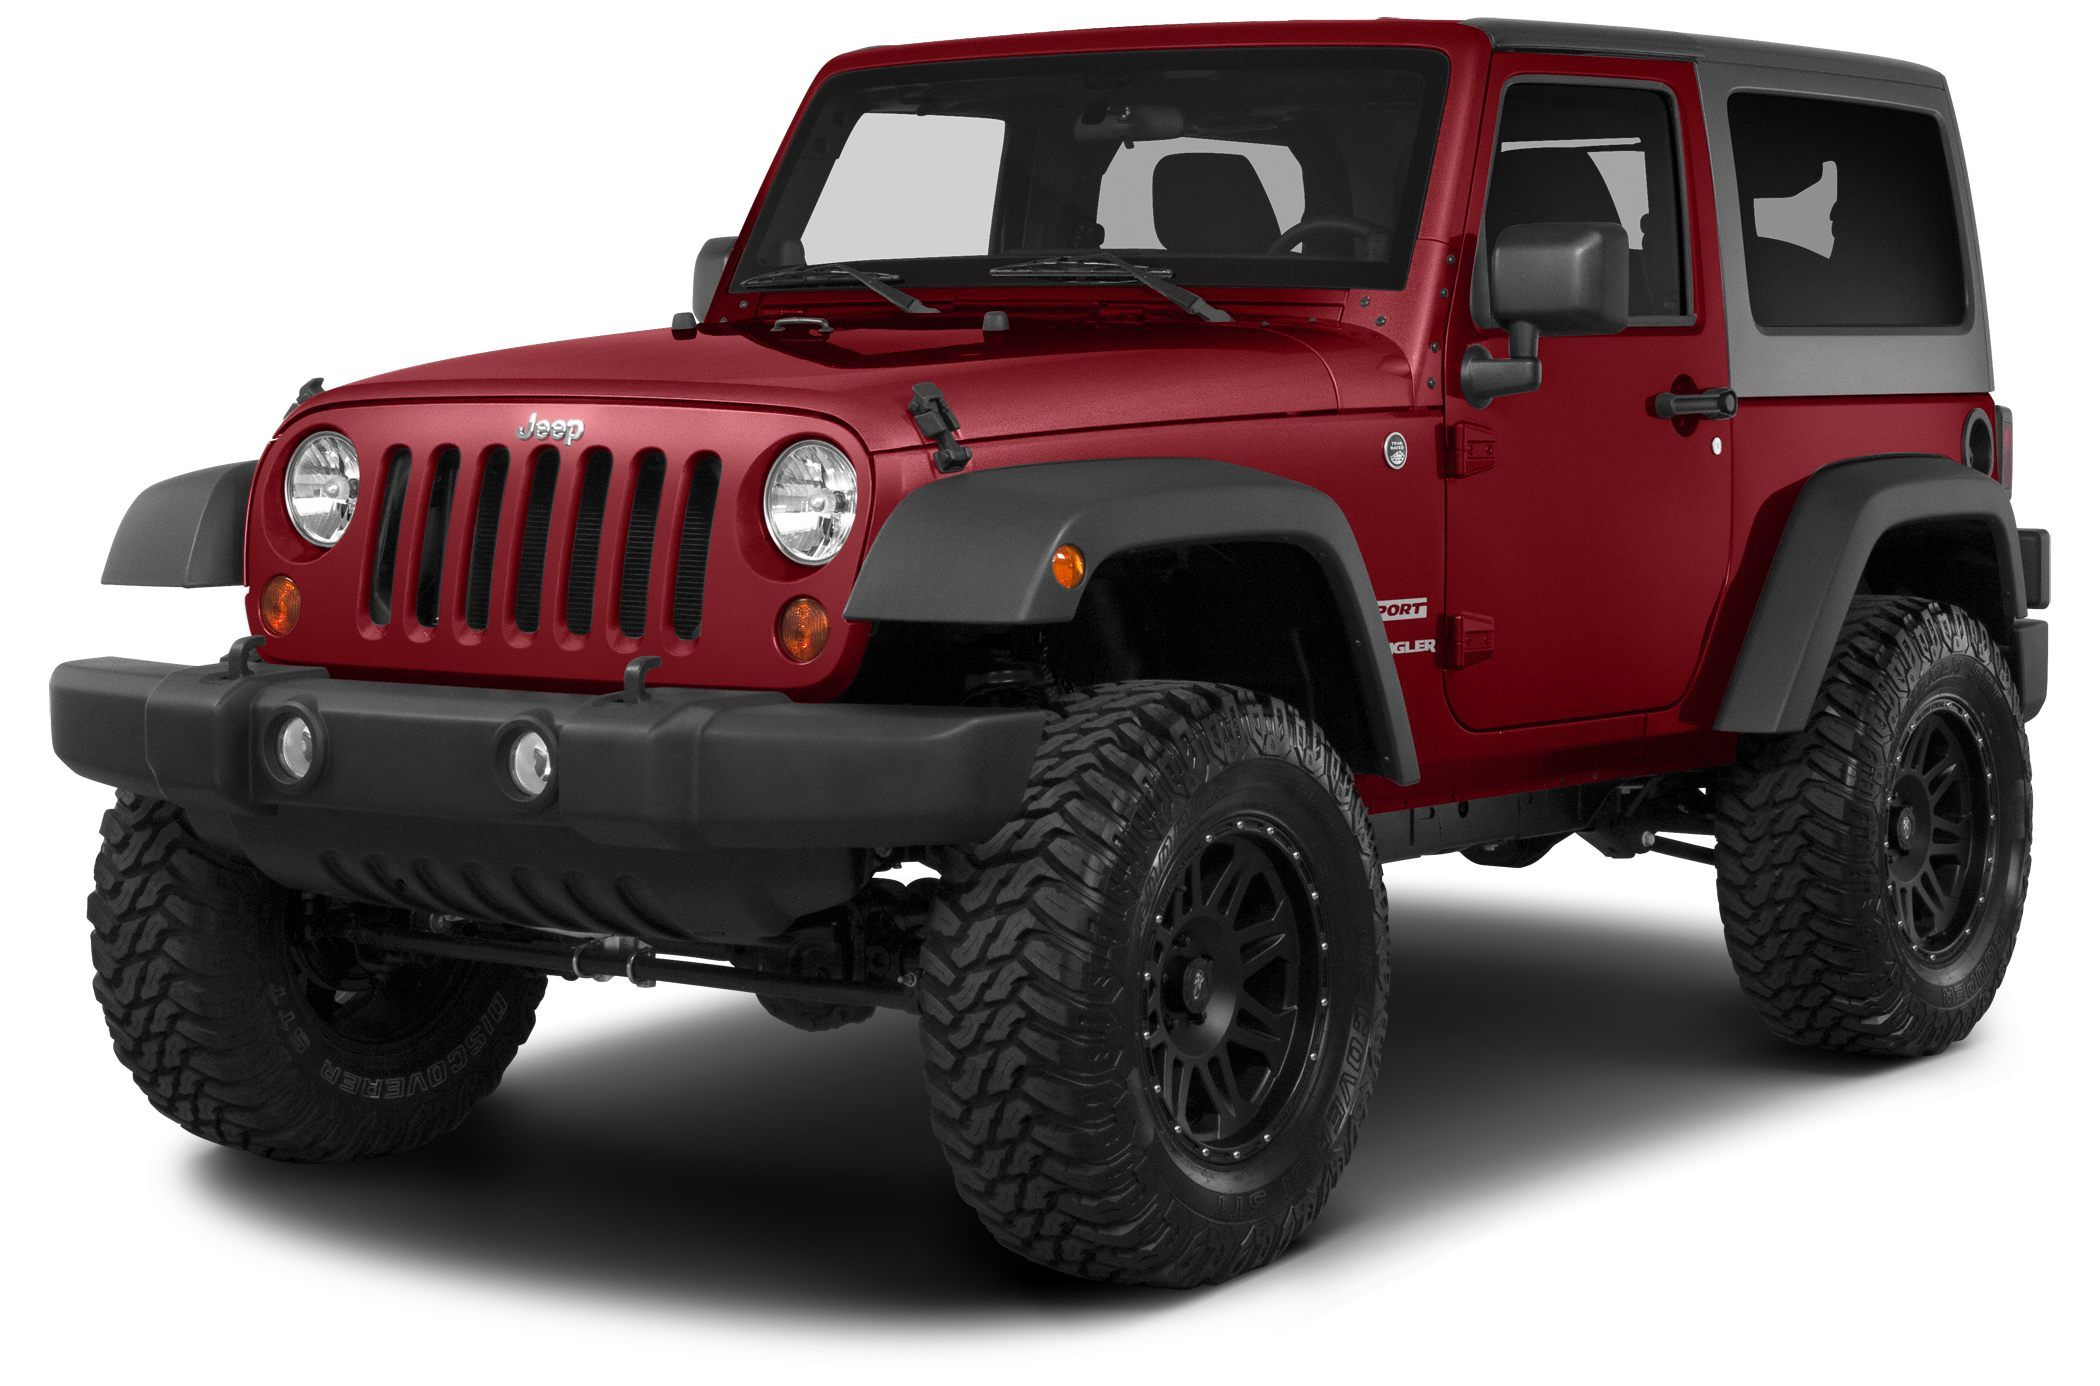 New 2014 Jeep Wrangler Price Photos Reviews Safety Ratings 2014 Jeep Wrangler Jeep Wrangler 2011 Jeep Wrangler